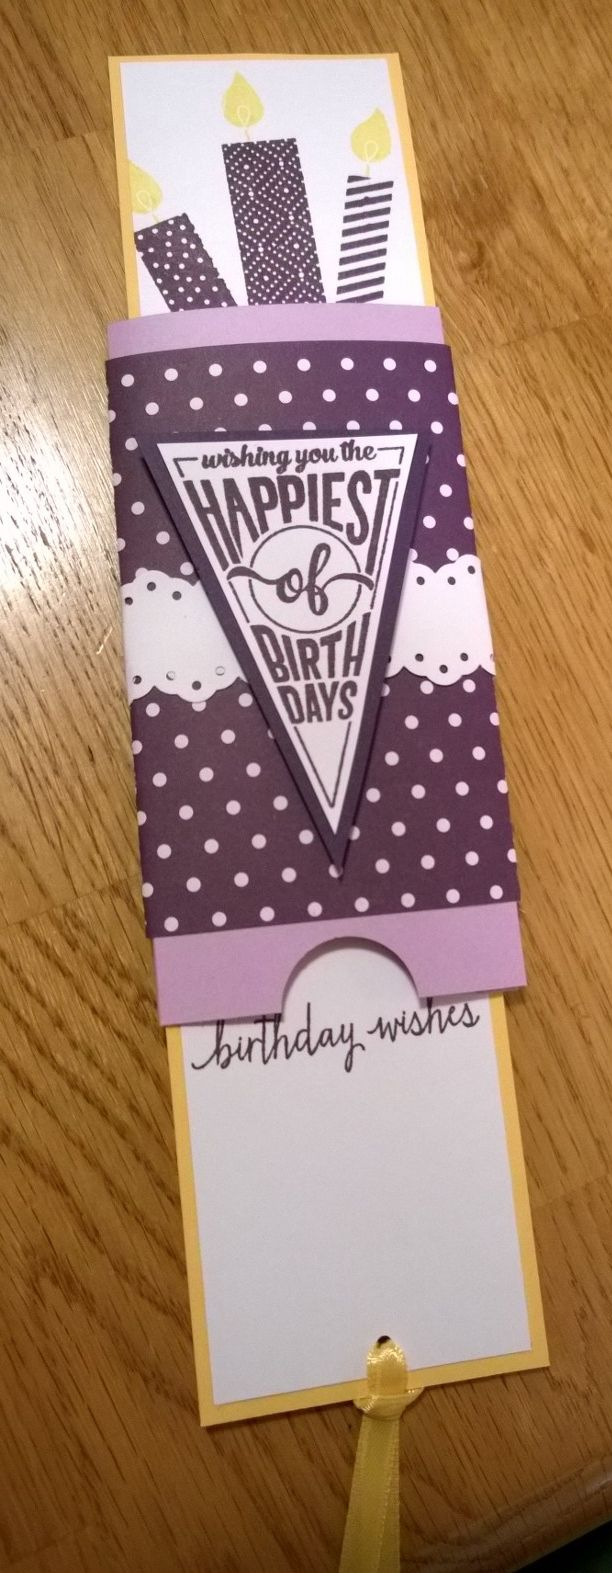 Stampin Up Sweet Stack Stampin Up Build A Birthday Double Slide Card-Open Thank you Linda Bauwin for the base card idea!